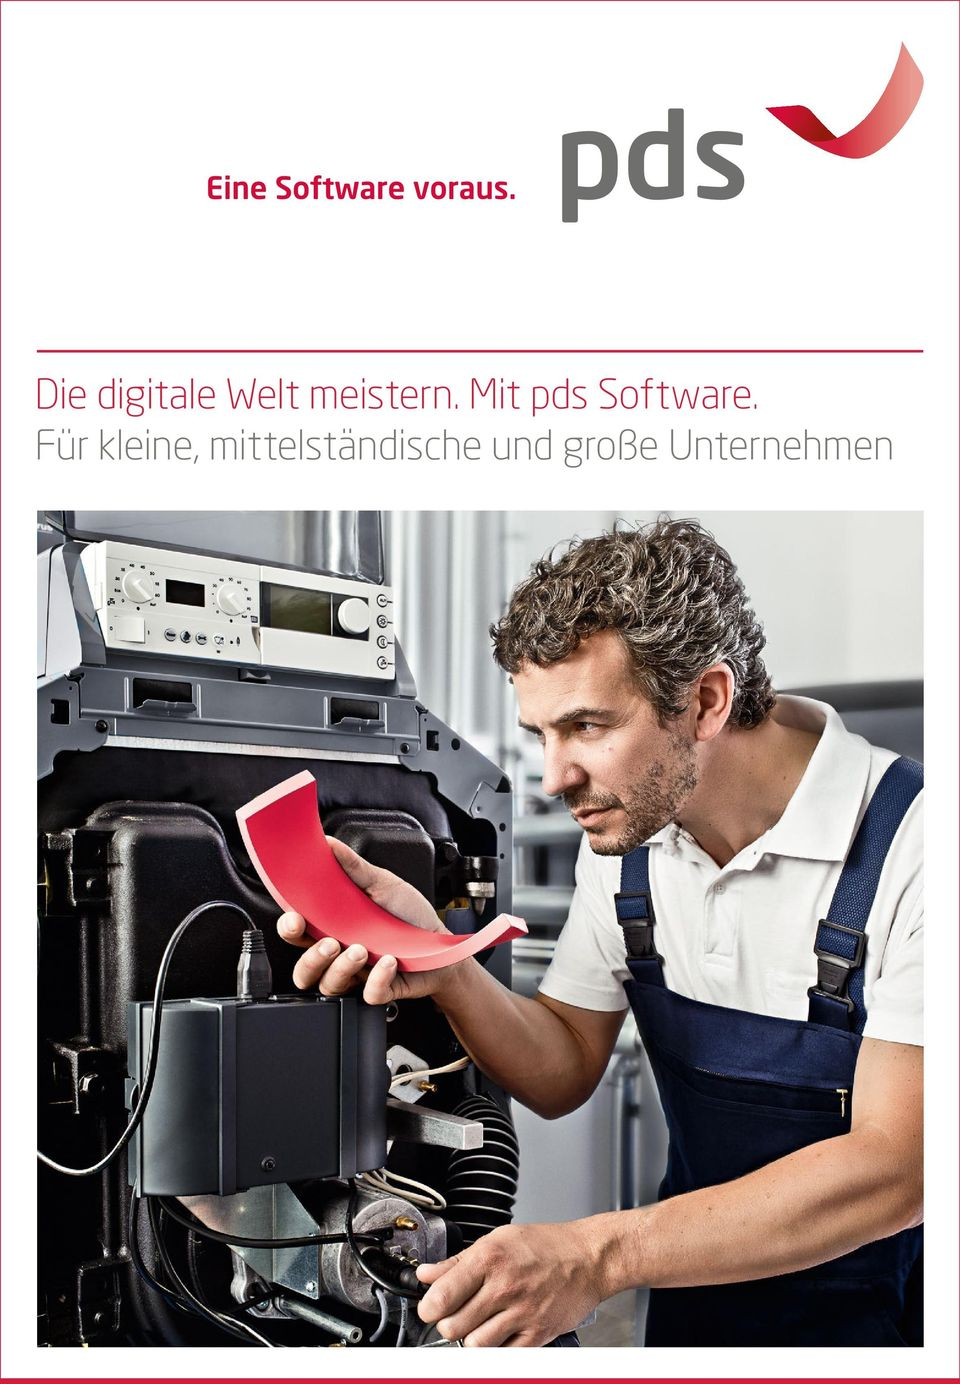 Mit pds Software.